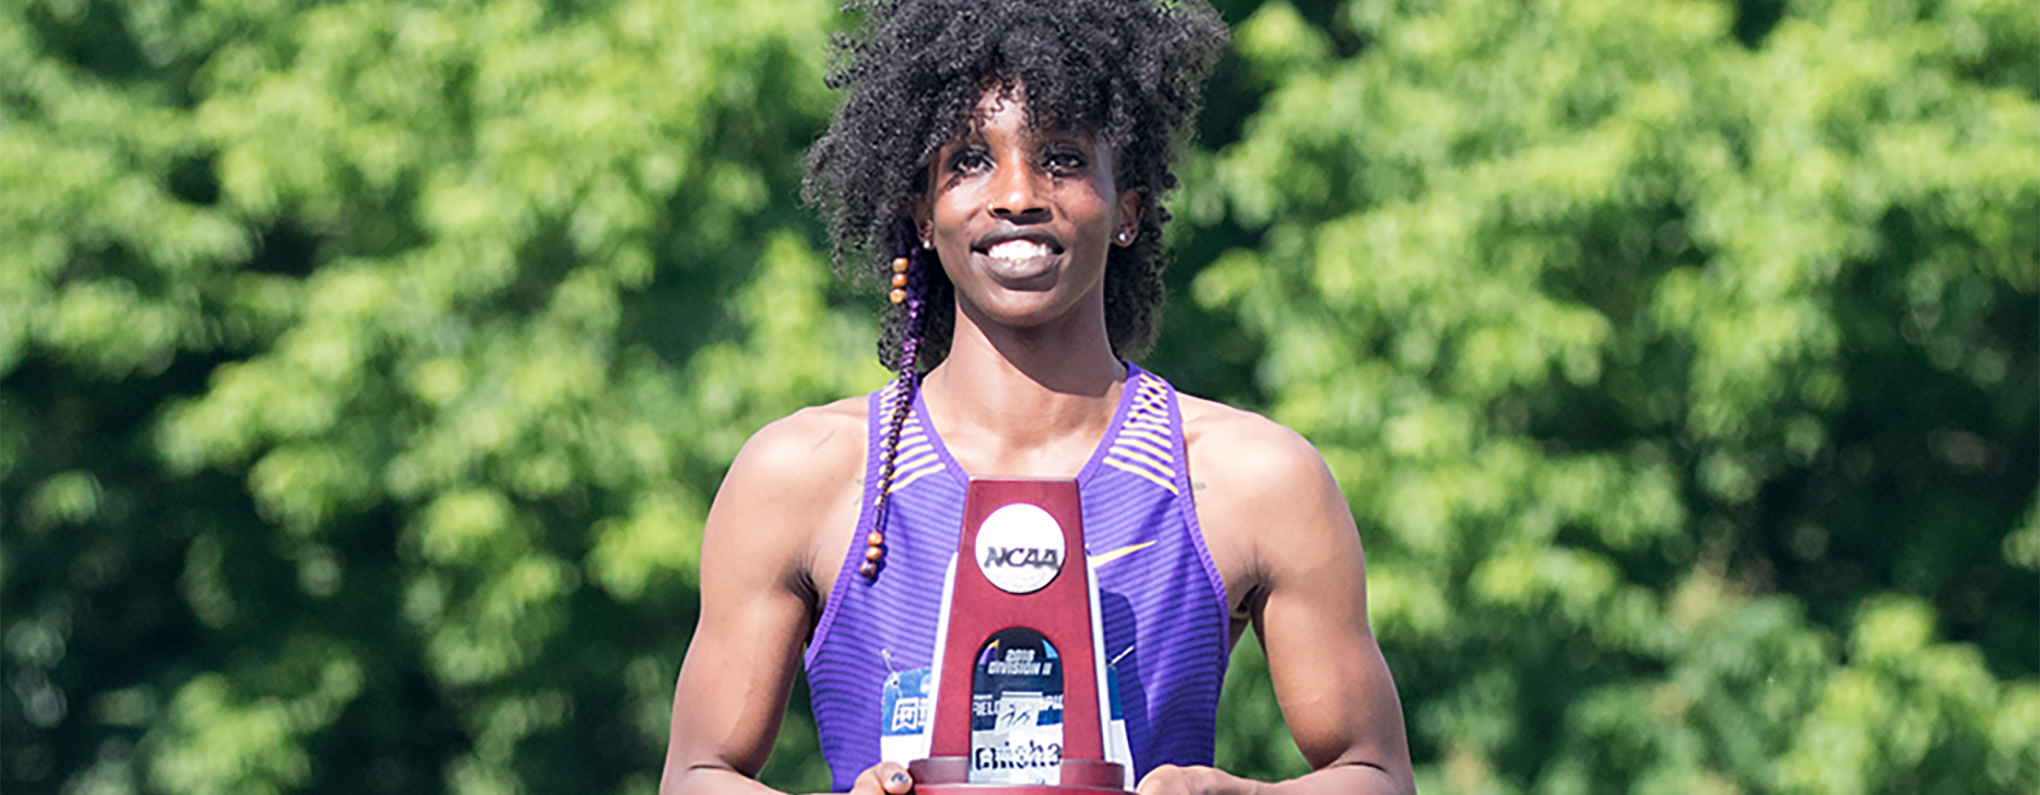 Monisha Lewis with award